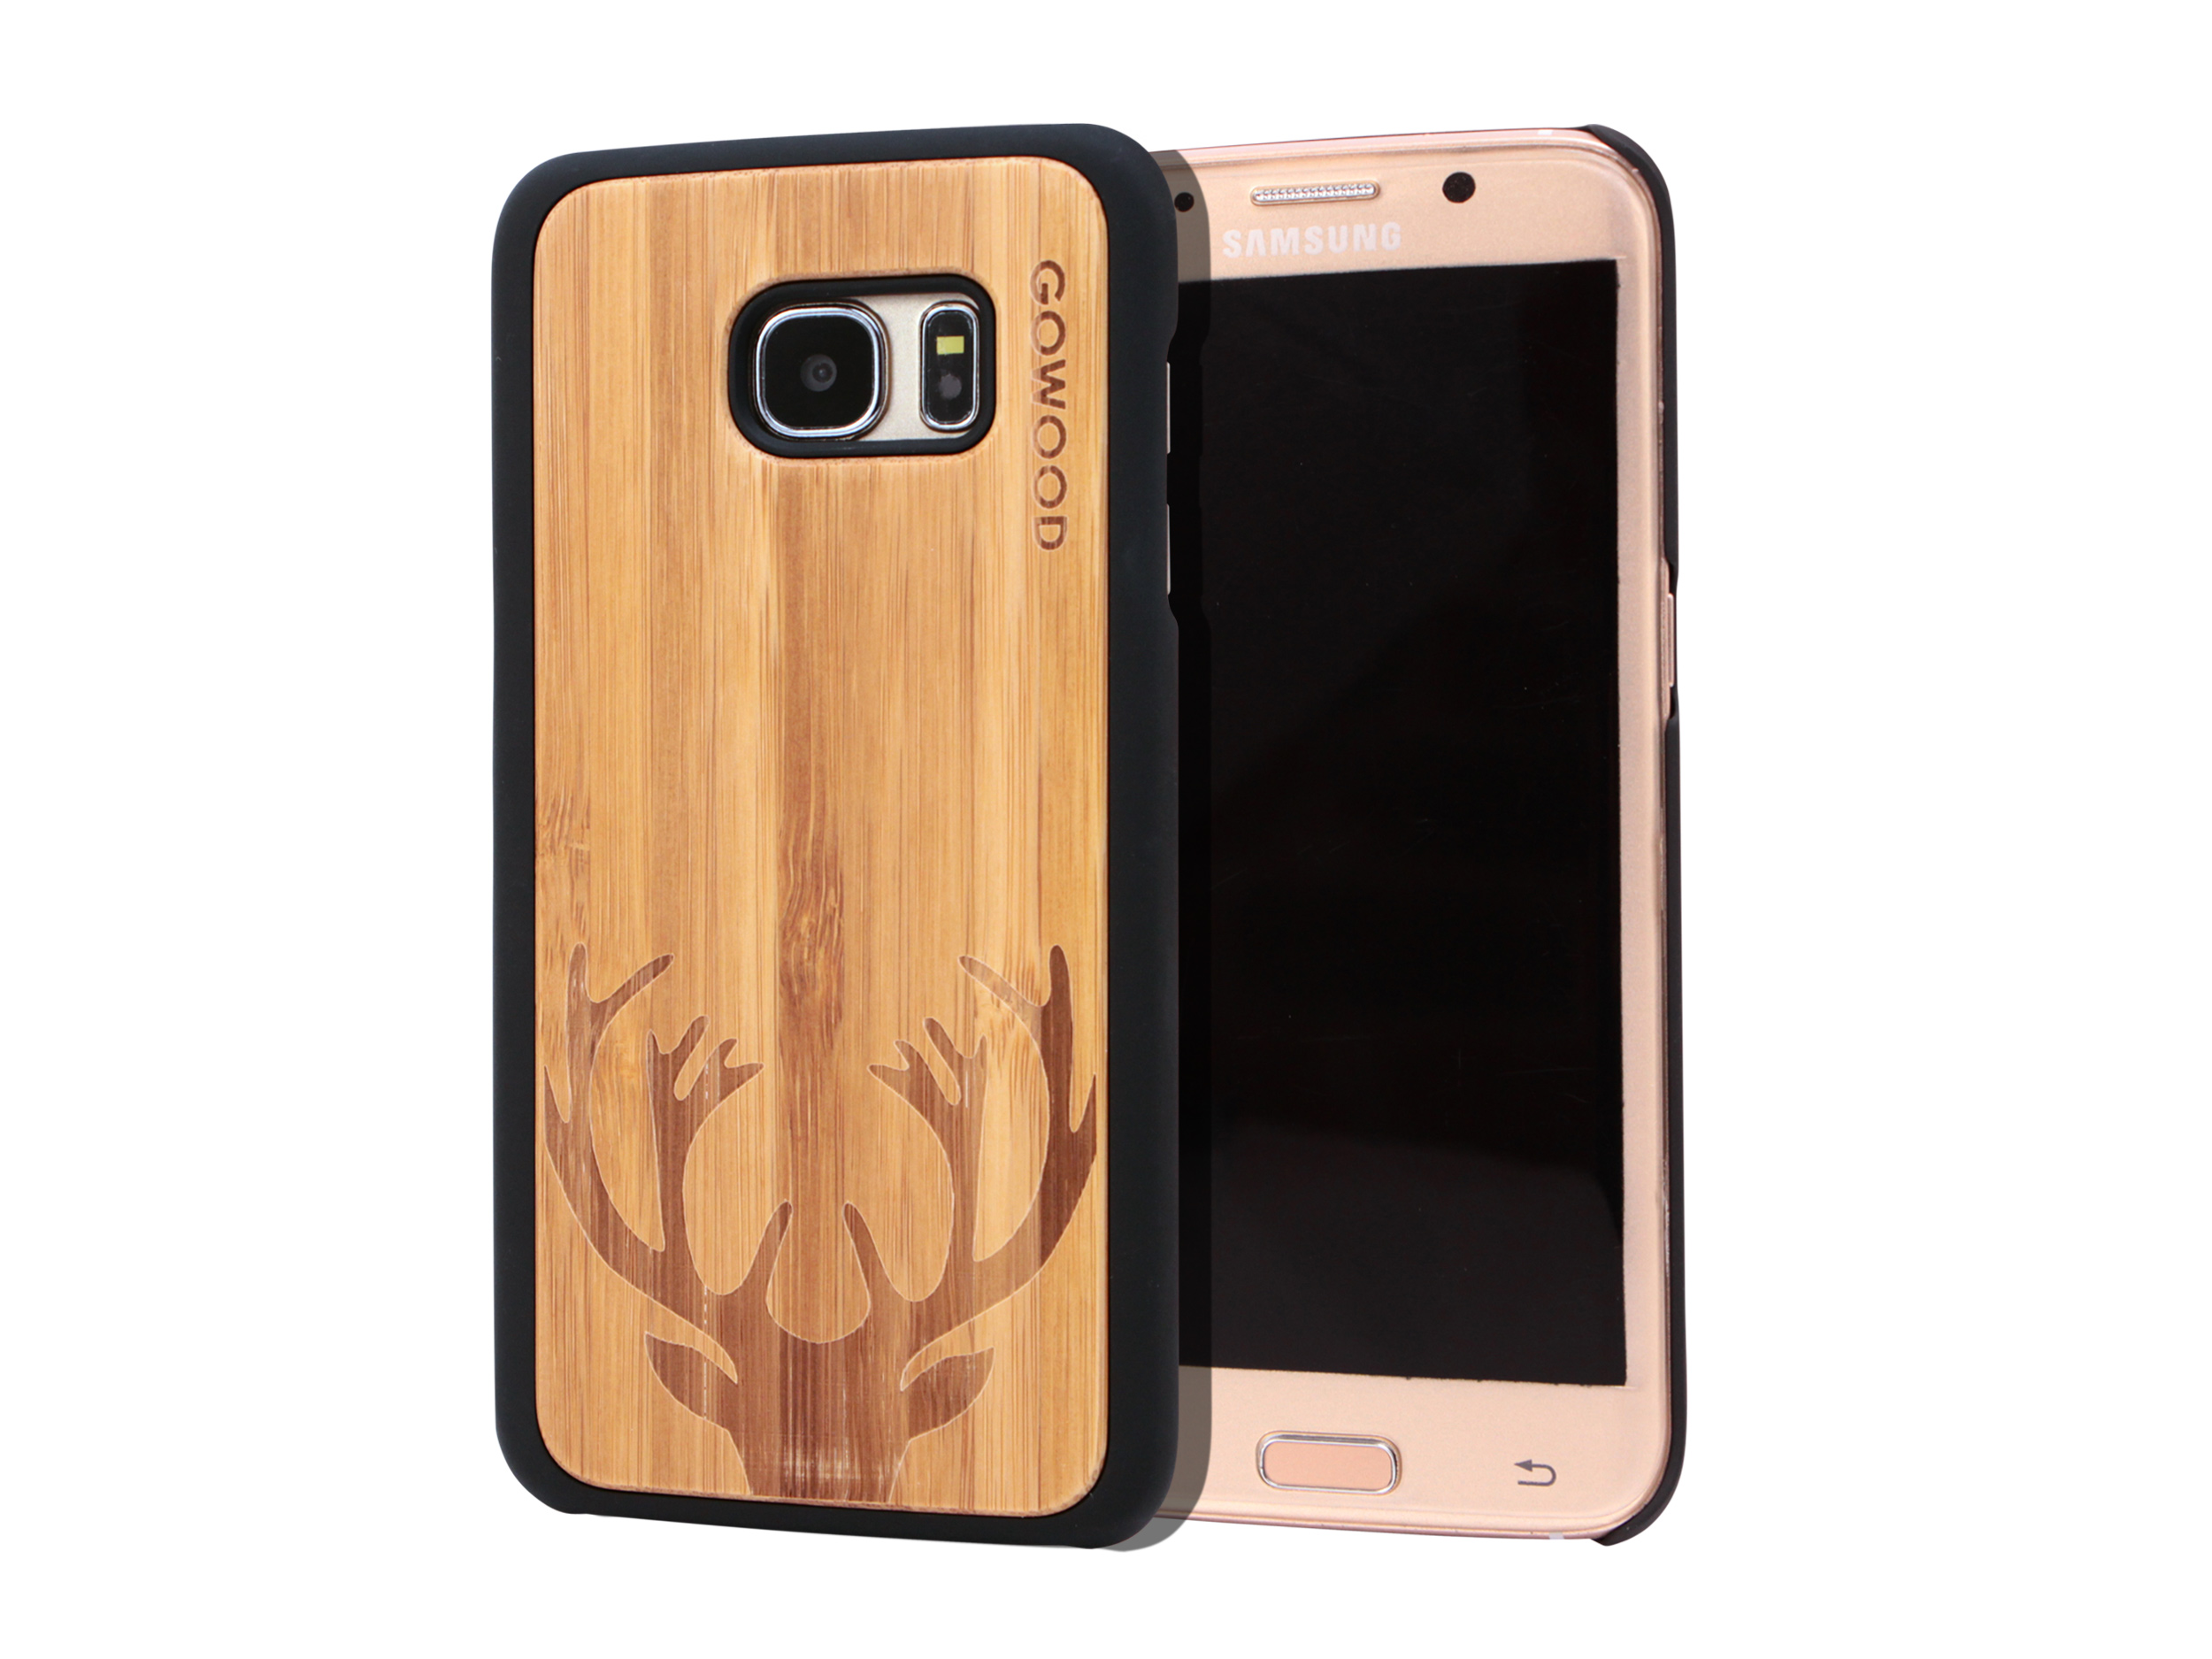 Samsung Galaxy S7 Edge wood case deer main